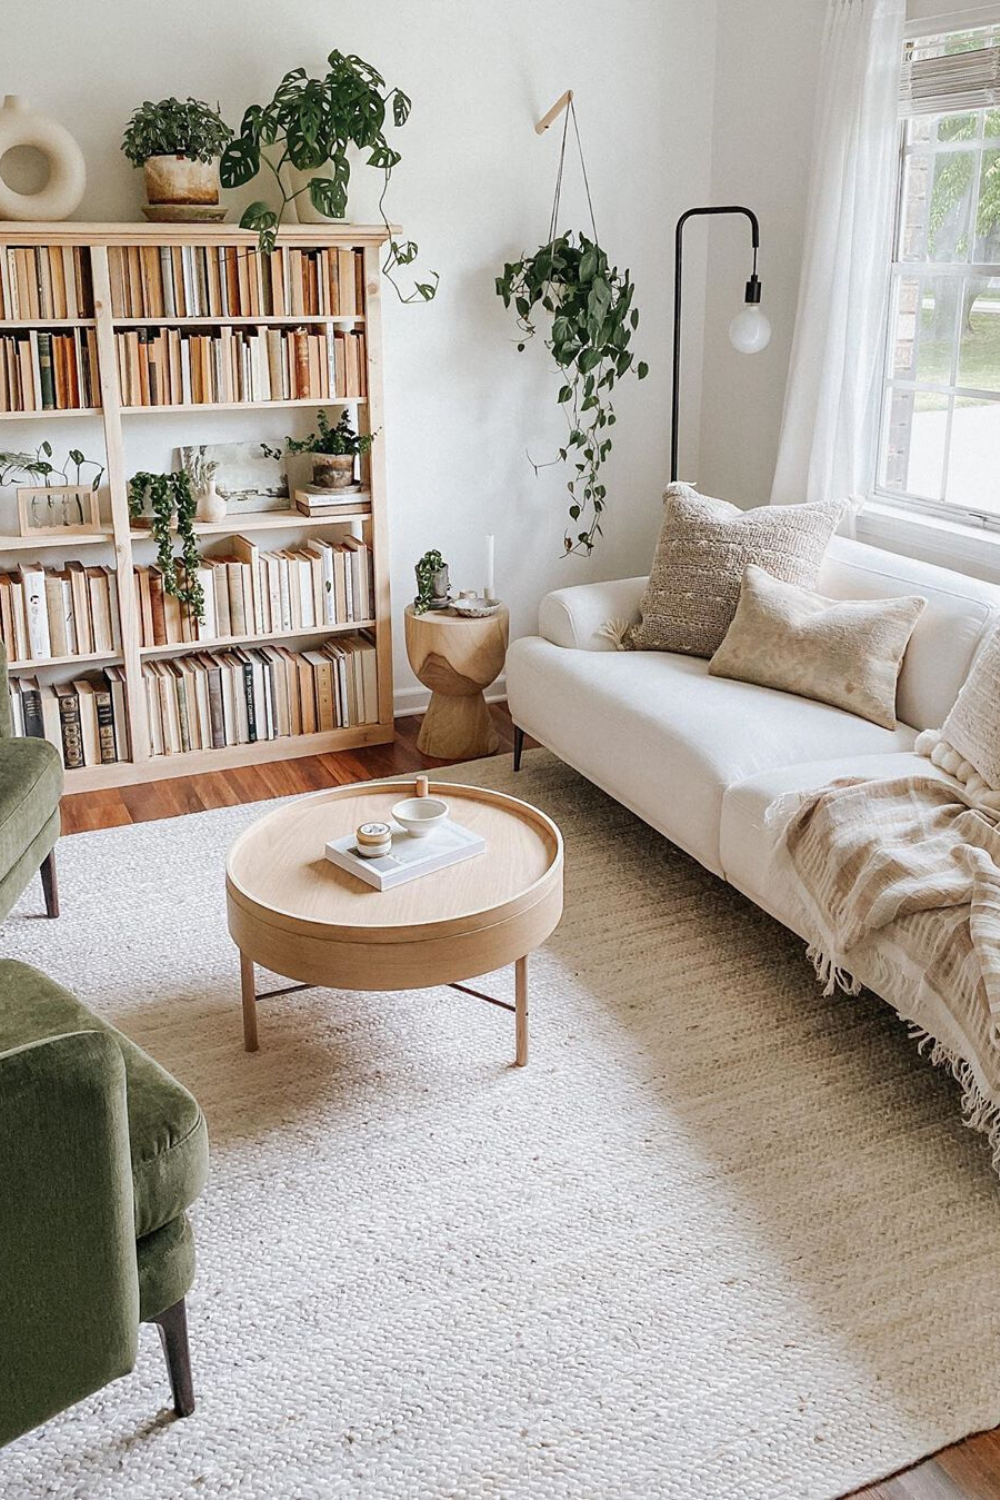 Photo of 30 Cute Living Room Design Ideas You'll Want To Steal ASAP